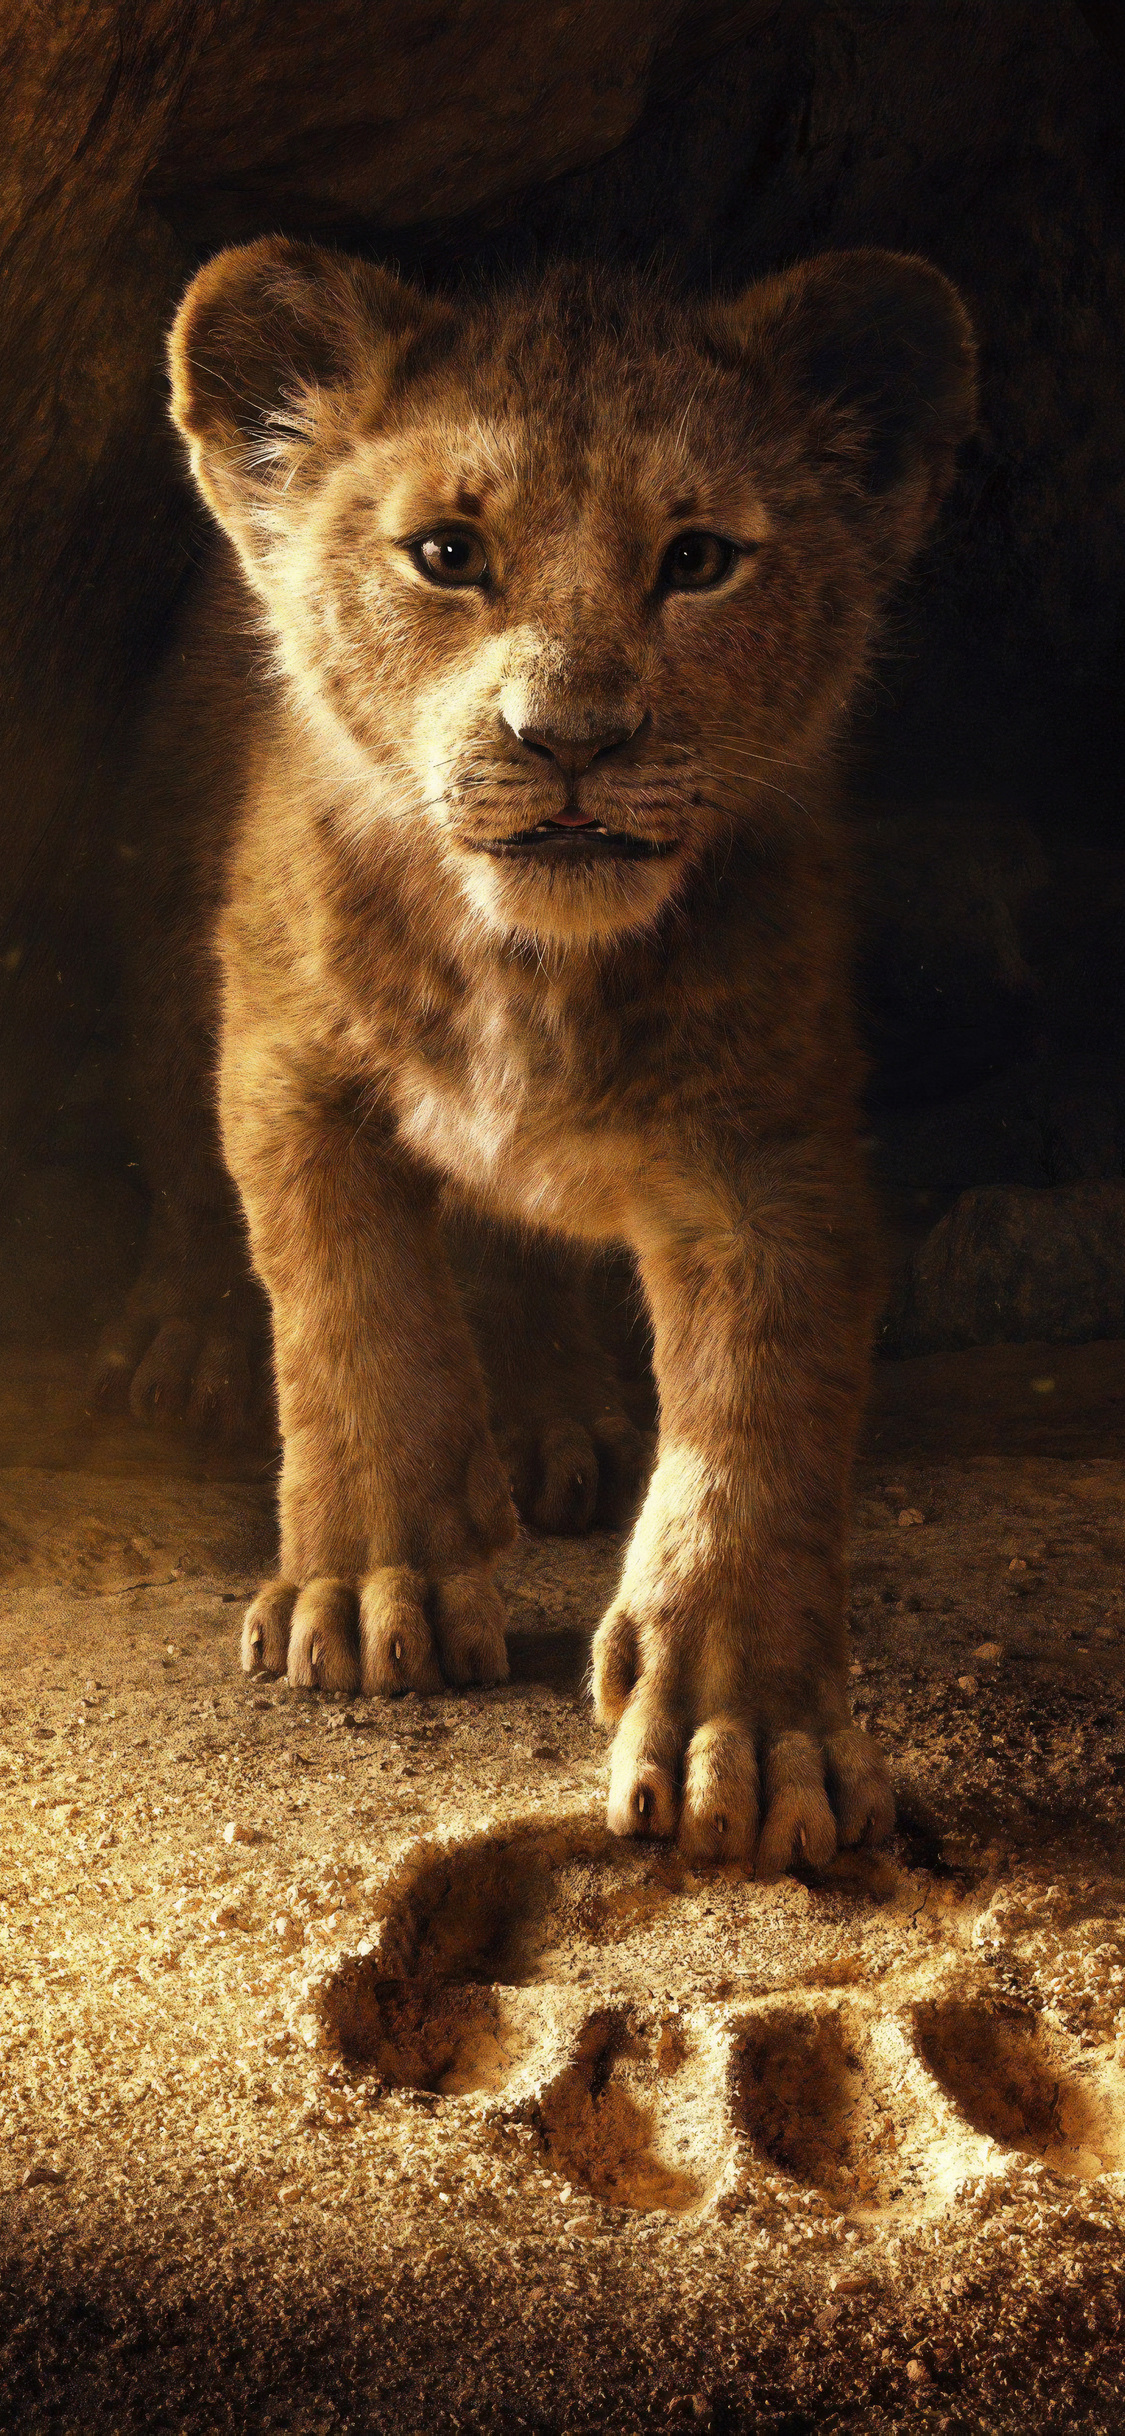 1125x2436 The Lion King 2019 Iphone XS,Iphone 10,Iphone X HD 4k